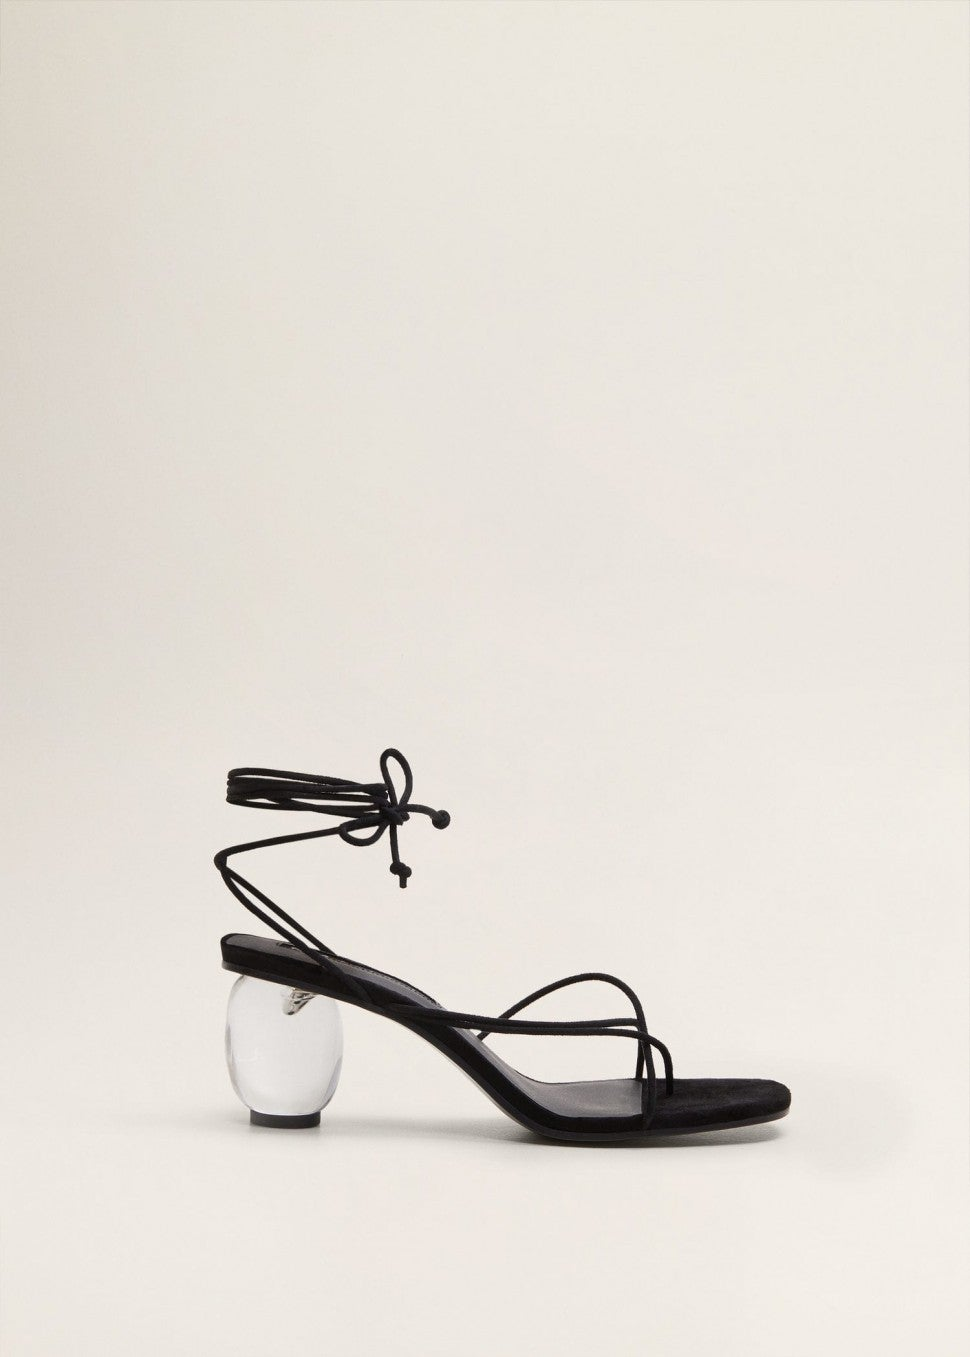 Mango black strappy sandal with lucite heel